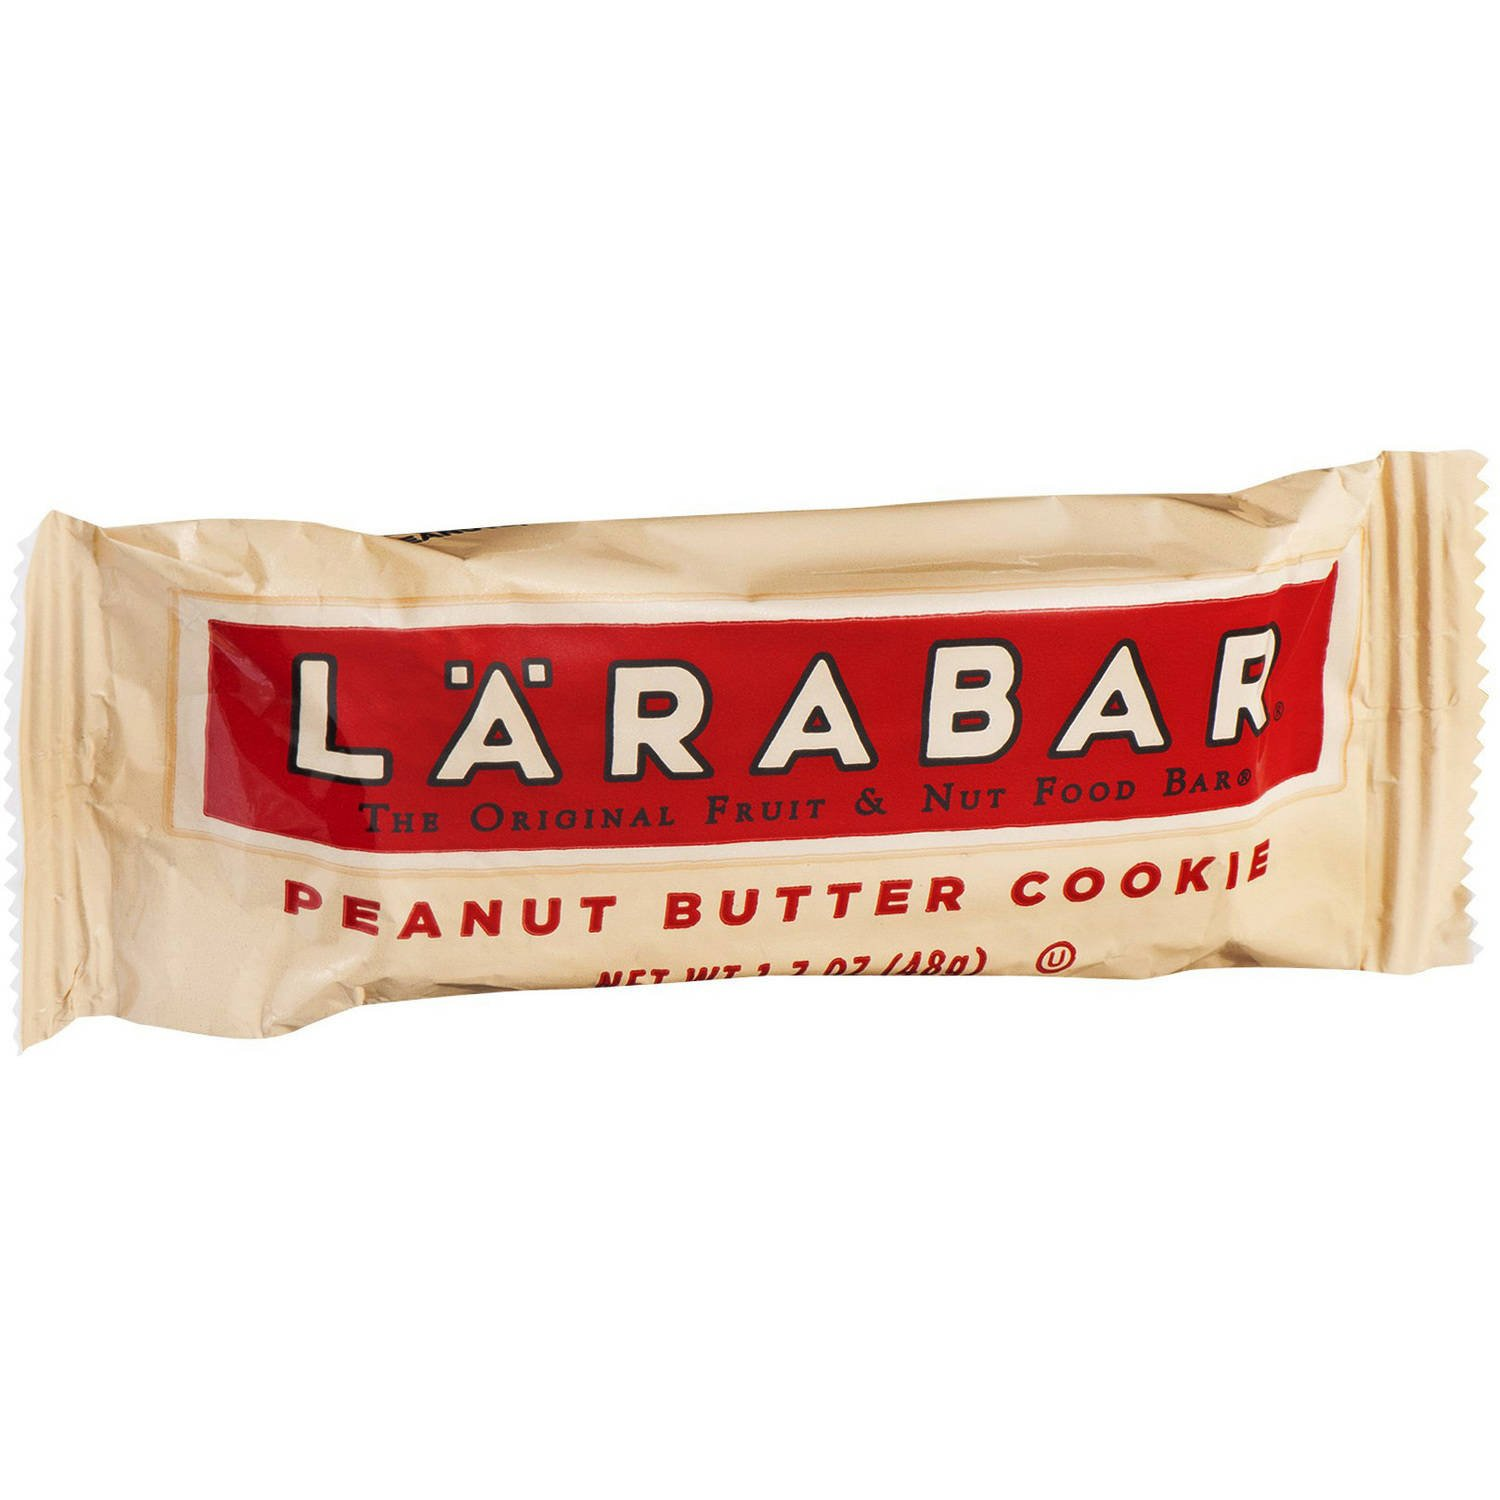 Larabar Gluten fDfih Free Bar, Peanut Butter Cookie, 1.7 oz Bars, 16 Count (4 Pack)